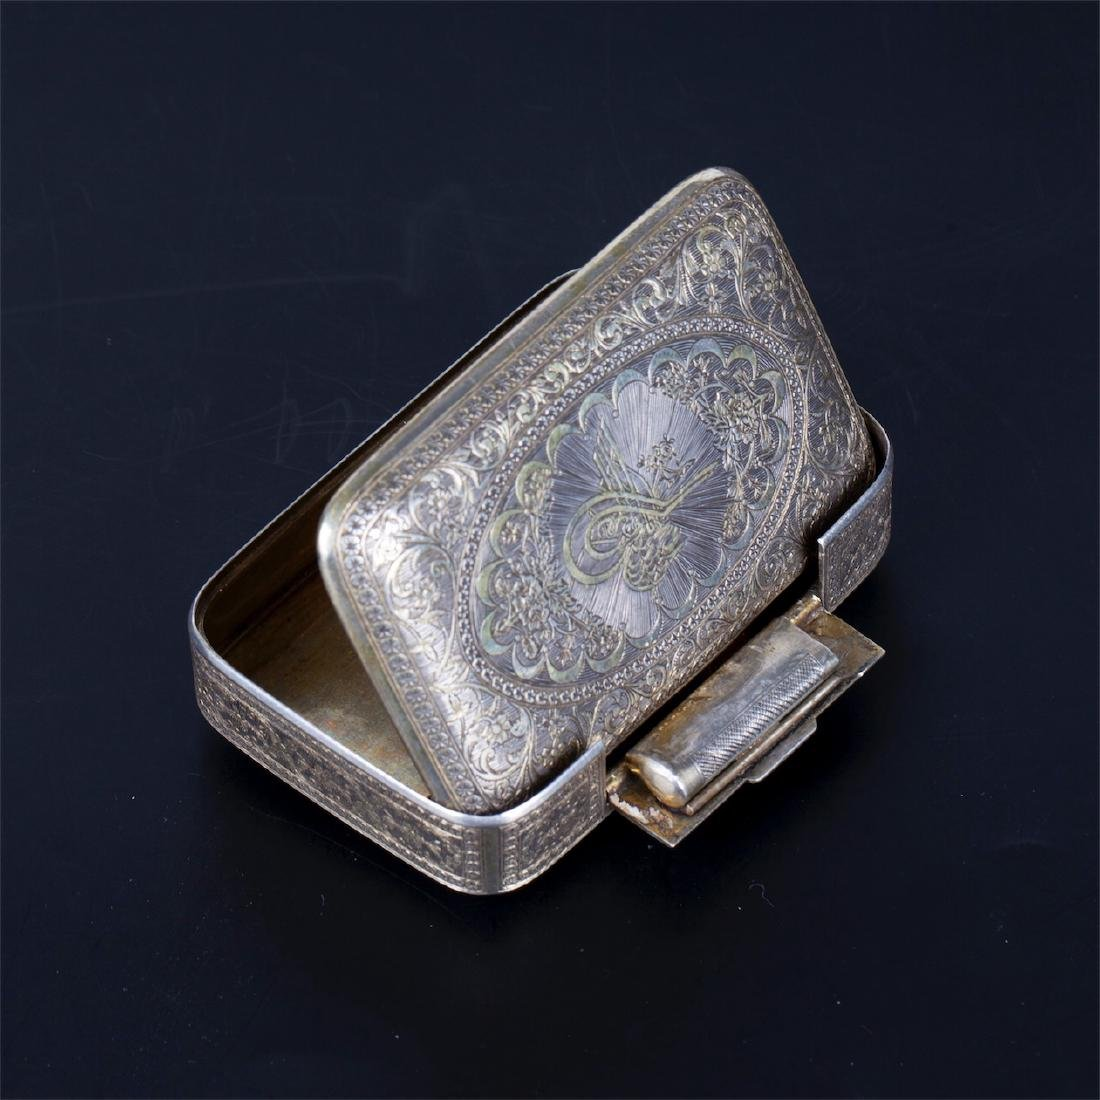 Antique Turkish silver cigarette case with a floral - 4